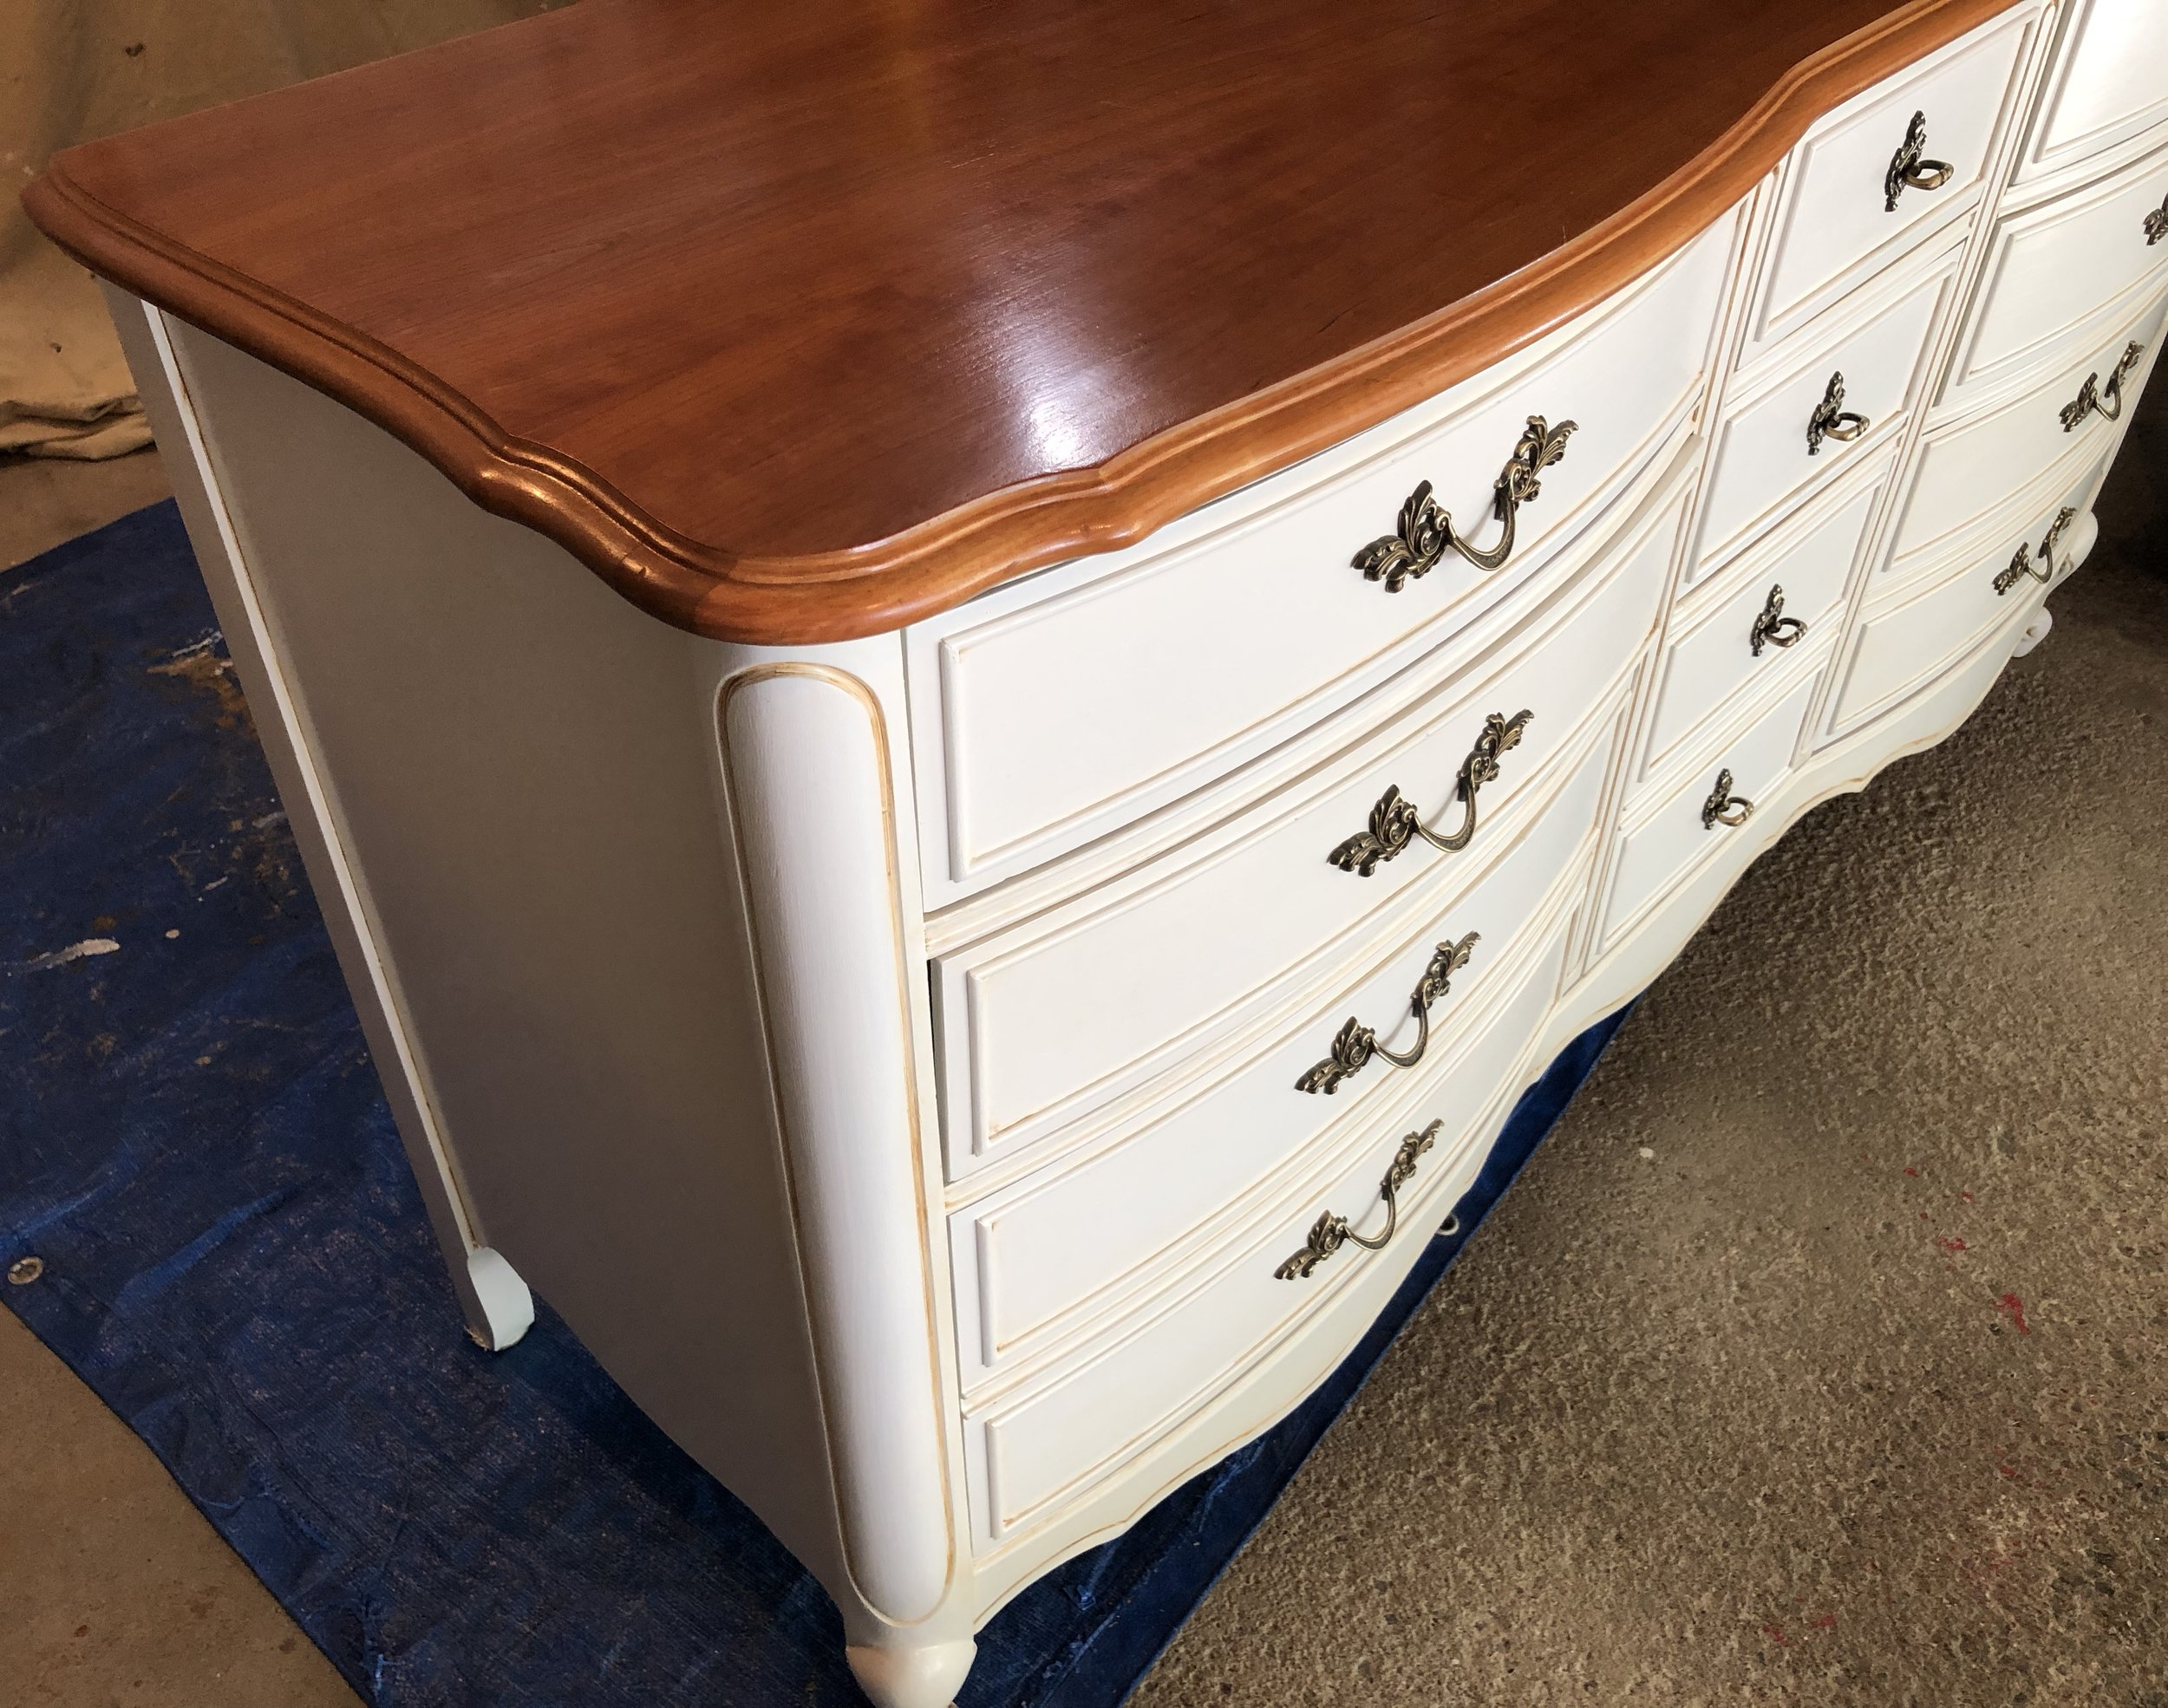 Top refinished and  base painted with custom glazing technique that shows off the beautiful detailing on this vintage bedroom furniture.